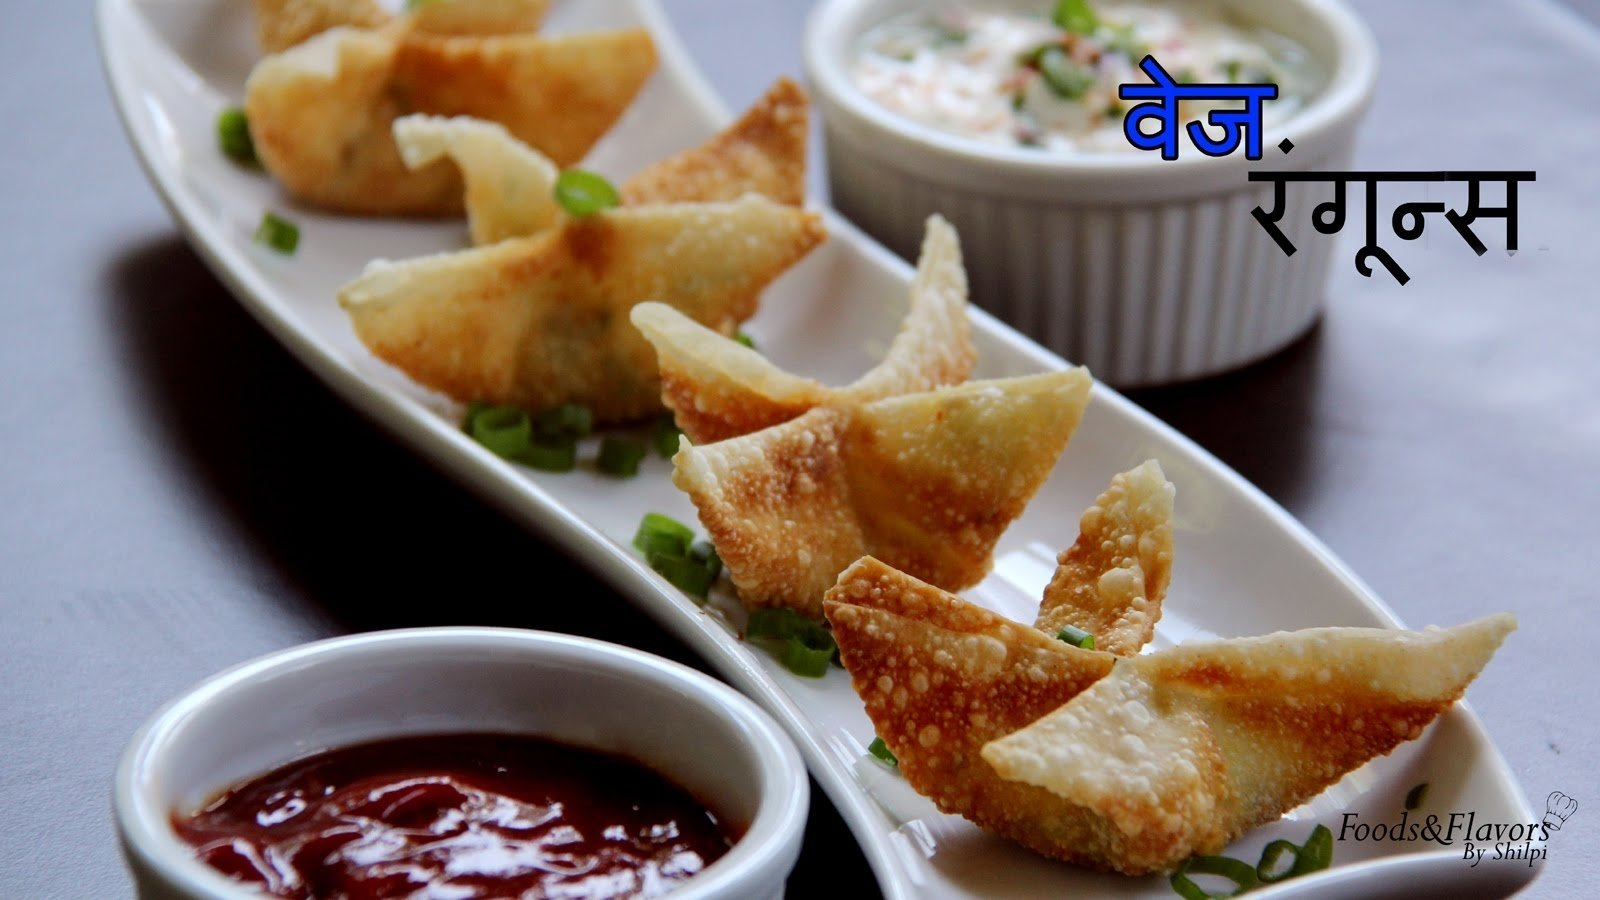 10 Unique Quick And Easy Snack Ideas cream cheese wontons recipe in hindi e0a4b5e0a587e0a49ce0a4bc e0a4b0e0a482e0a497e0a582e0a4a8e0a58de0a4b8 1 2021